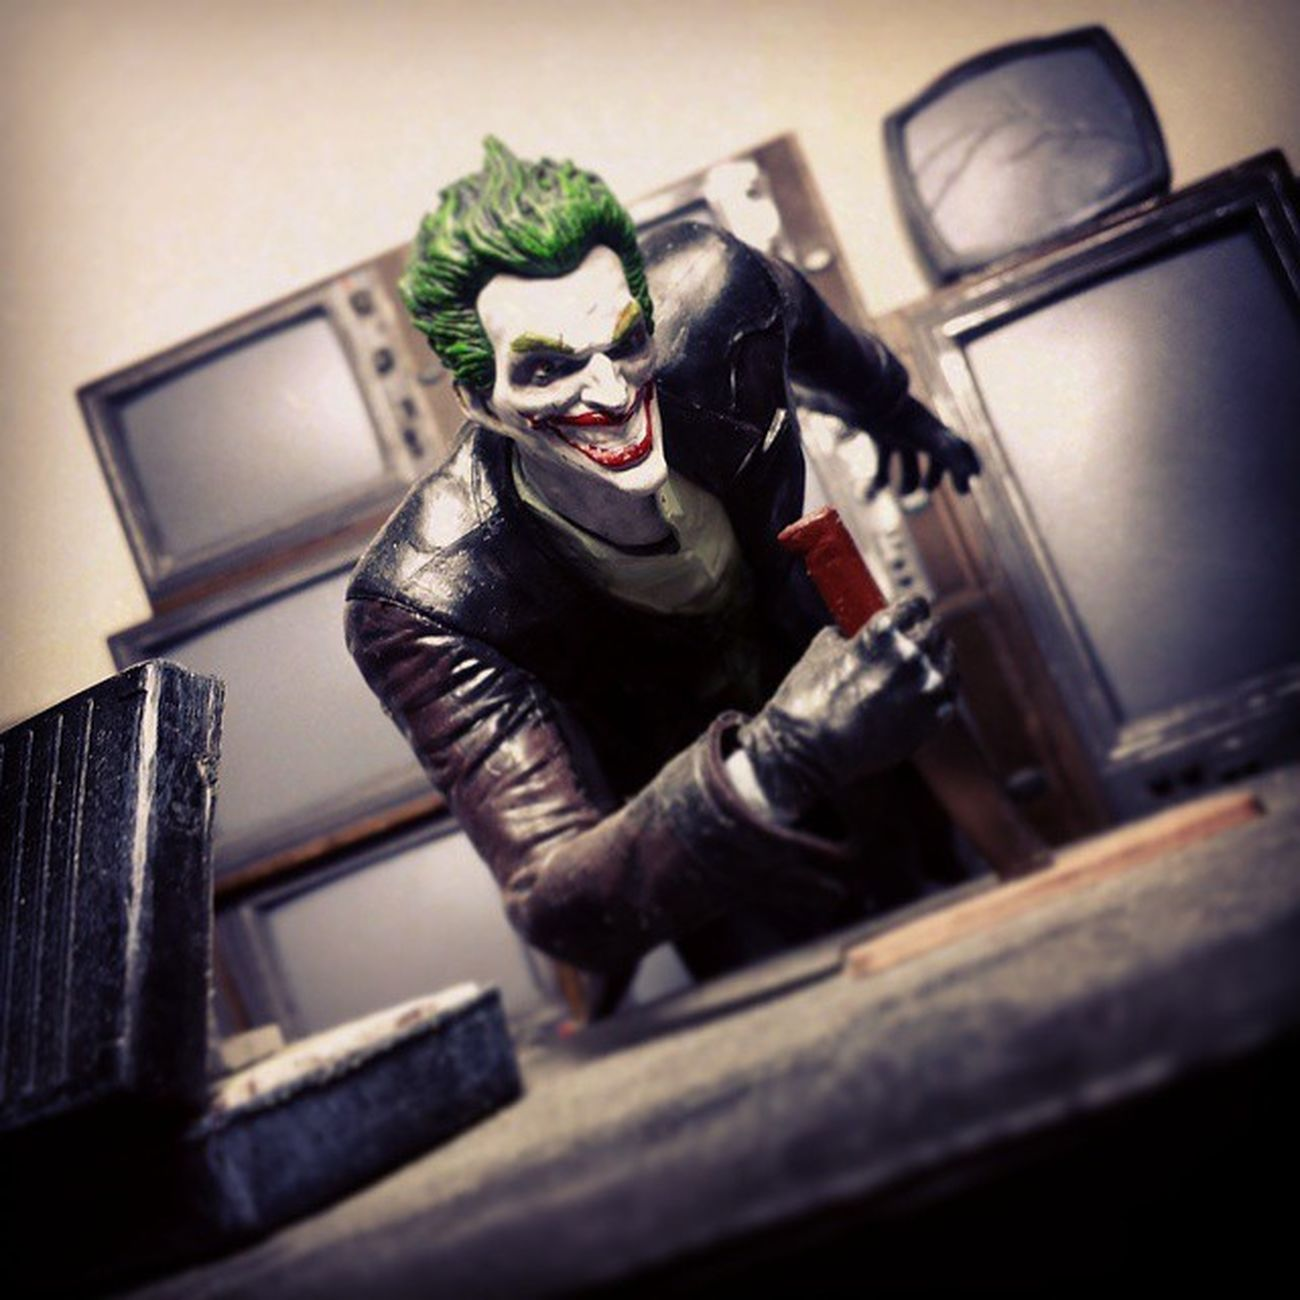 Batman Dccomics Thedarkknight Dcuniverse Dcnation DC Darkknight Joker Thejoker Clownprinceofcrime Arkhamorigins Toys Toyphotography Toypizza Toysarehellasick Toycollector Toycommunity Toycollection